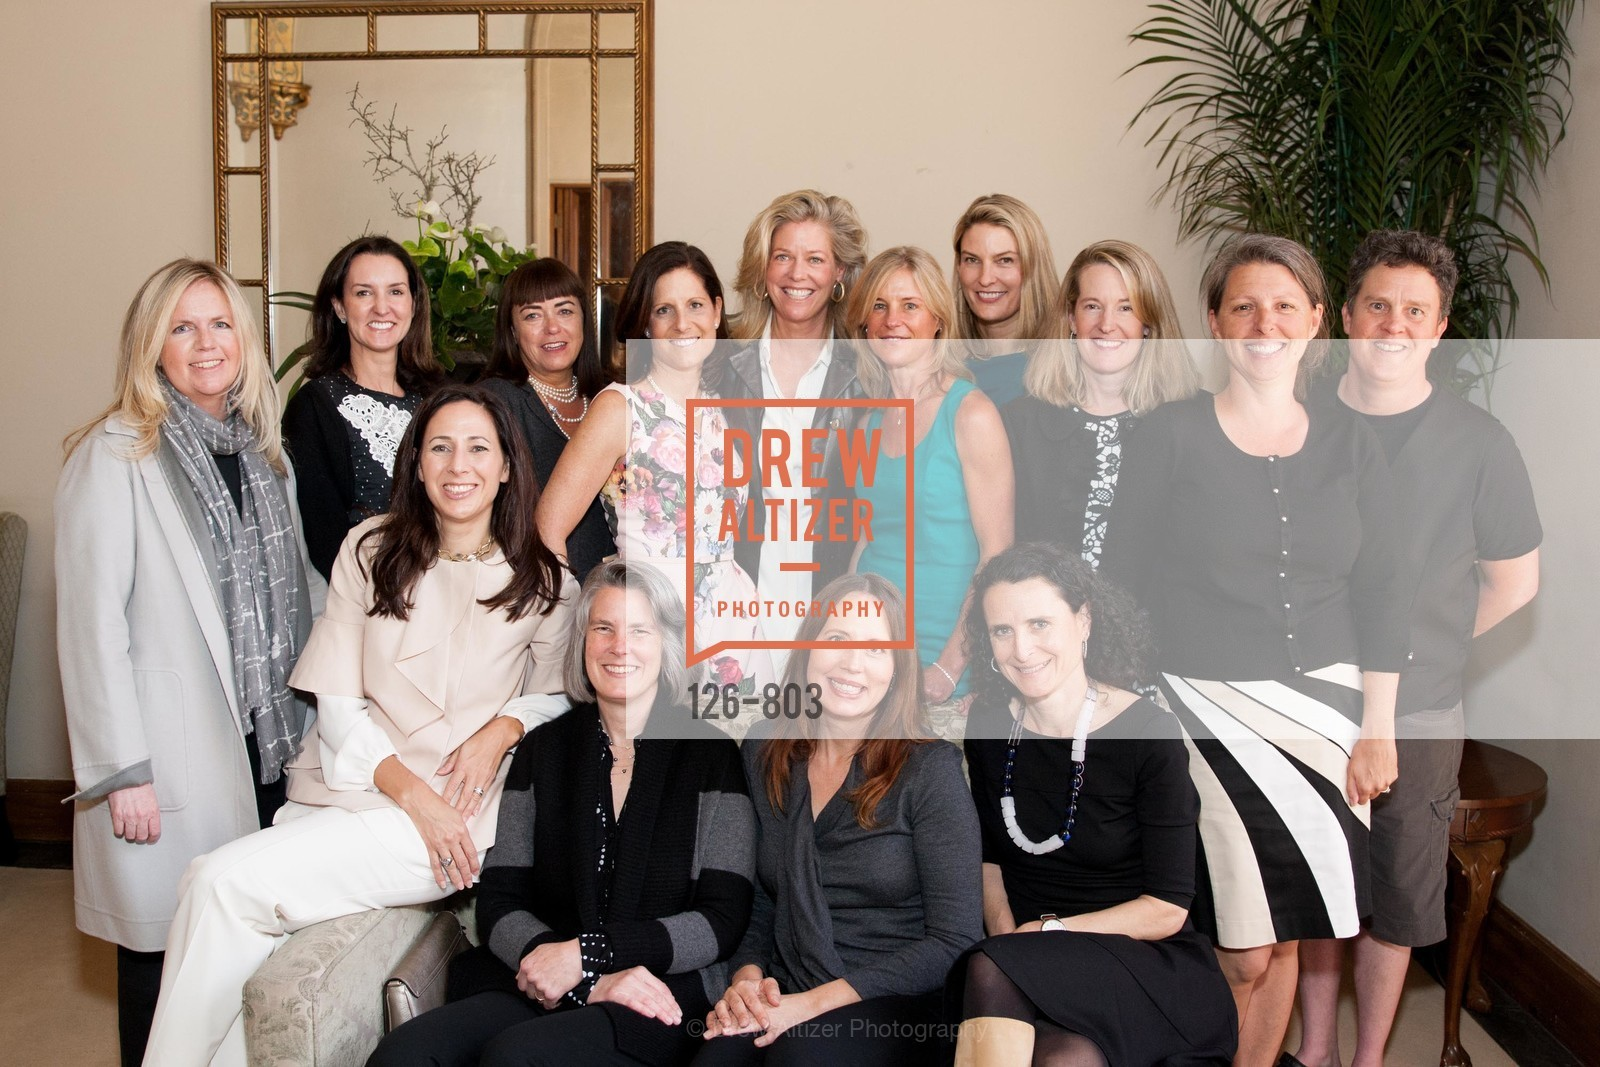 Heather Fullerton, Lindsey Dunkel, Margaret Grohne, Lisa Bransten, Mindy Henderson, Lila Schilling, Liza Schilling, BURKE'S Alumnae Luncheon, US, April 24th, 2015,Drew Altizer, Drew Altizer Photography, full-service agency, private events, San Francisco photographer, photographer california